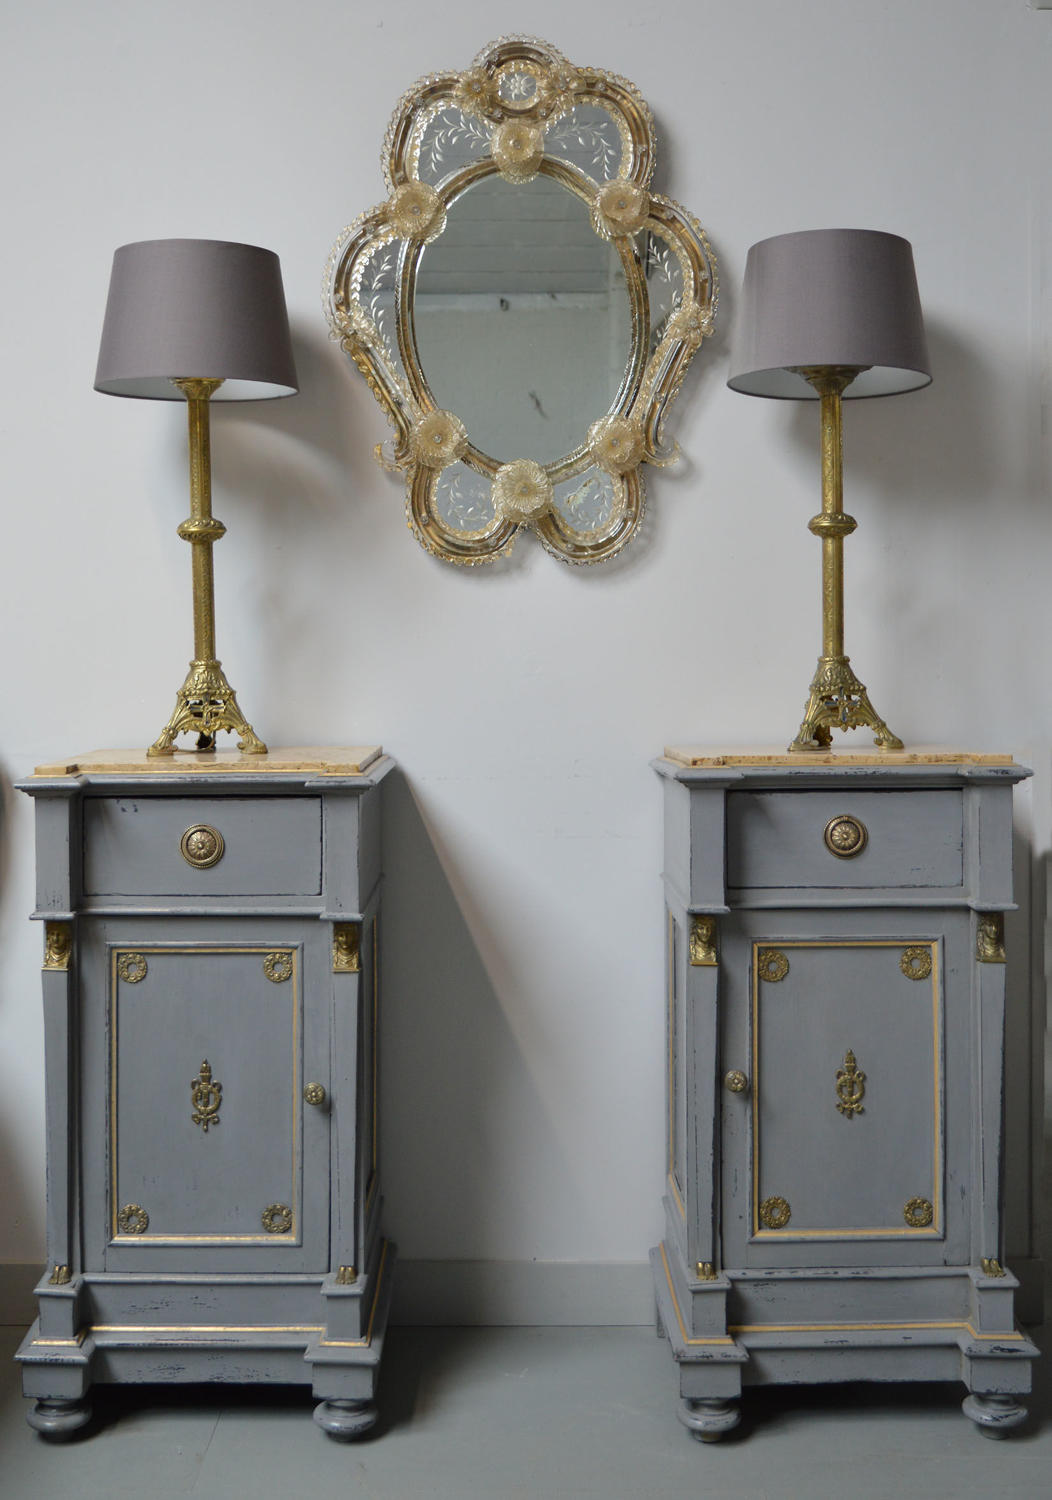 Pair of Empire Italian Bedside Cabinets c1900